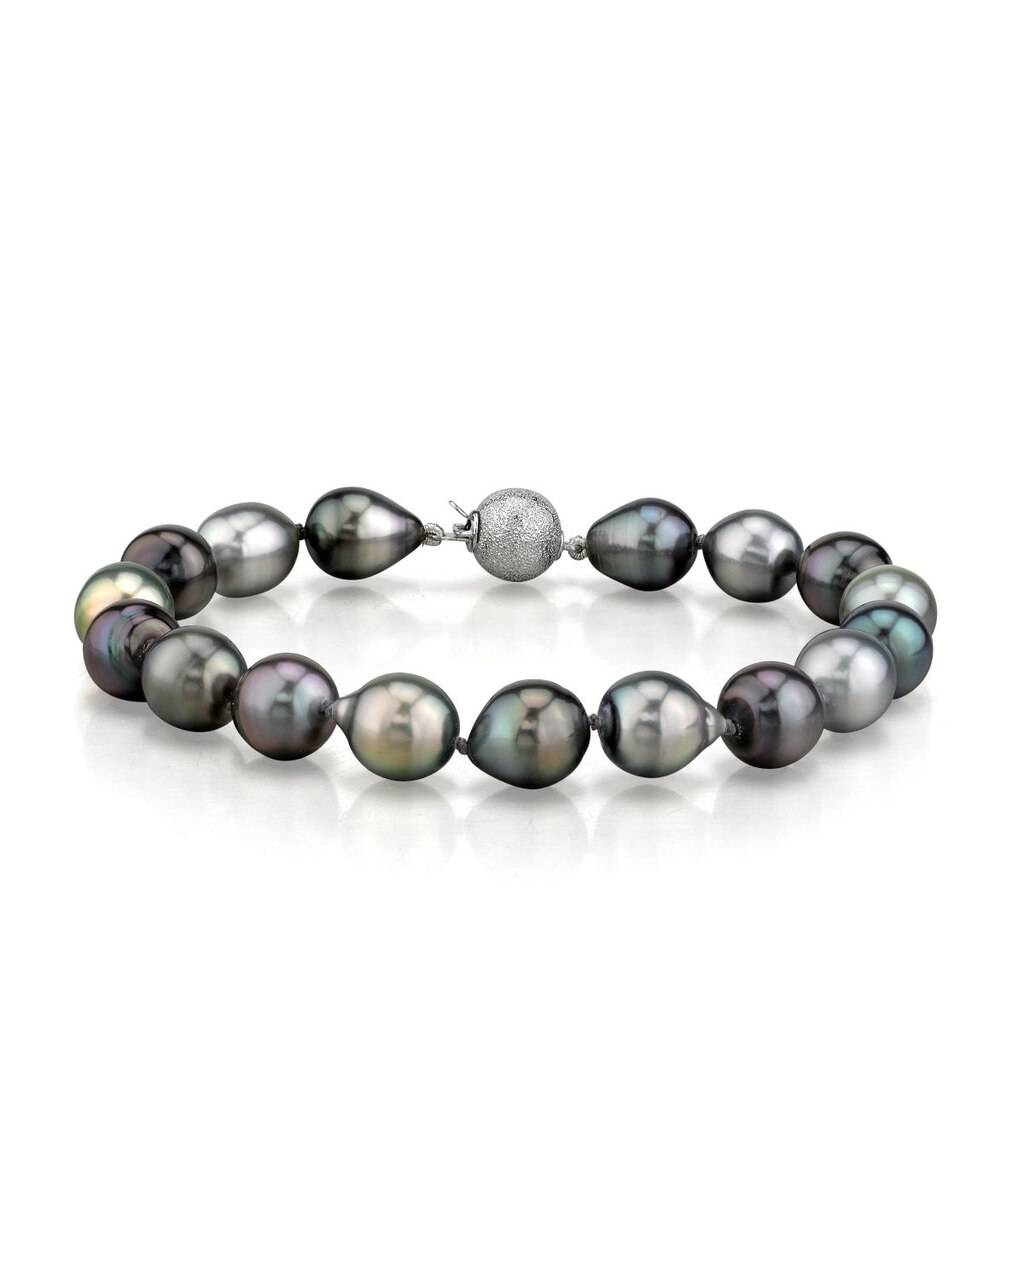 This elegant bracelet features 9.0-10.0mm Tahitian South Sea pearls, handpicked for their luminous luster